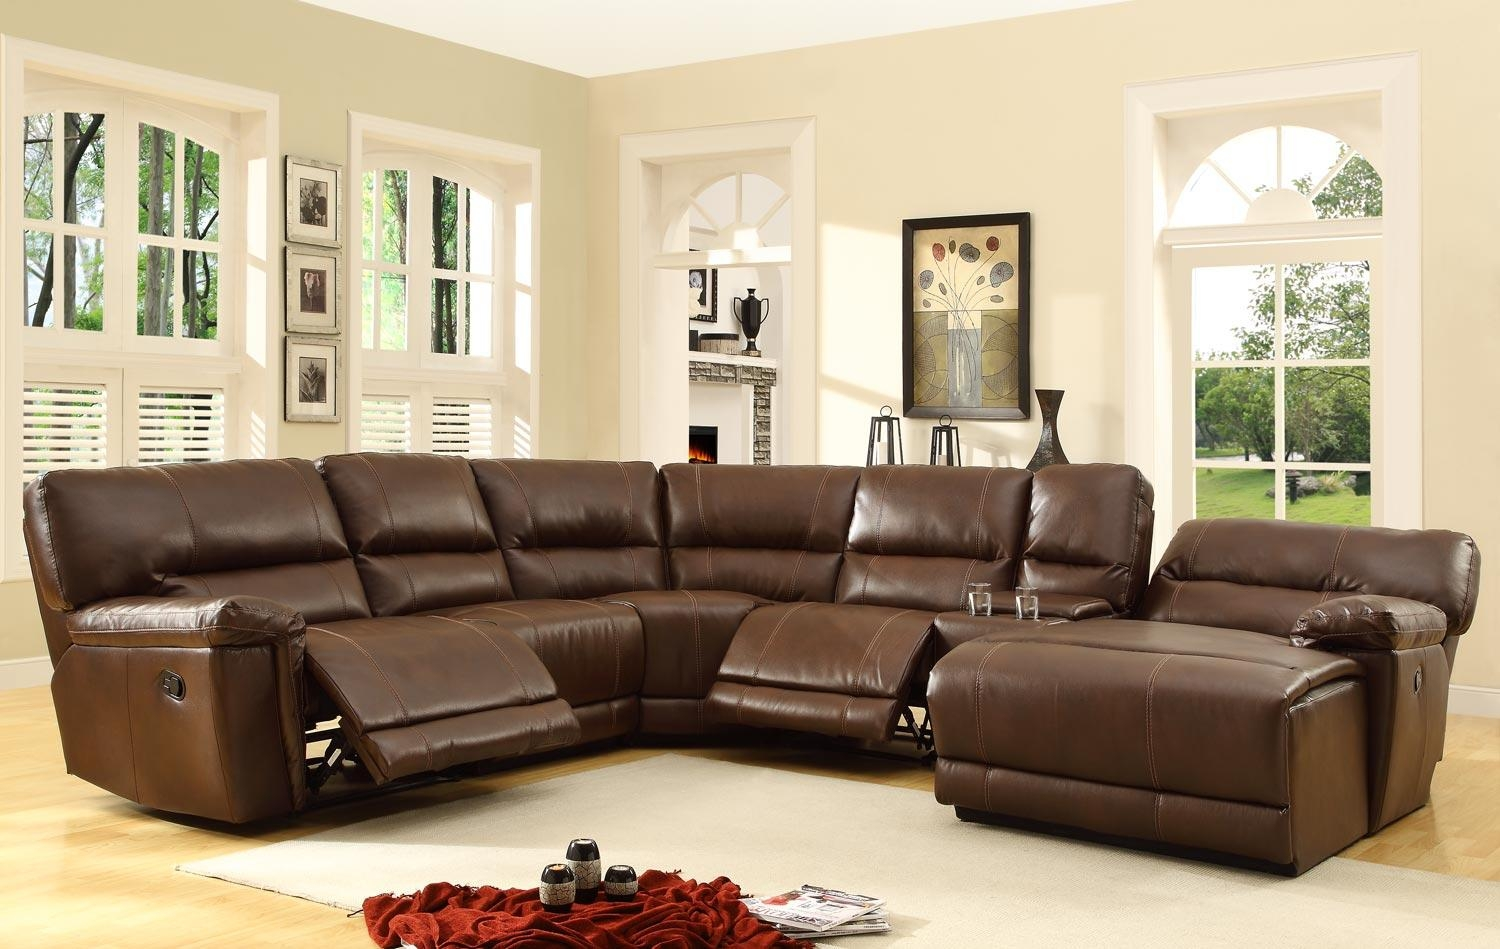 Homelegance Blythe Sectional Sofa Set – Brown – Bonded Leather Pertaining To Homelegance Sofas (Image 4 of 20)